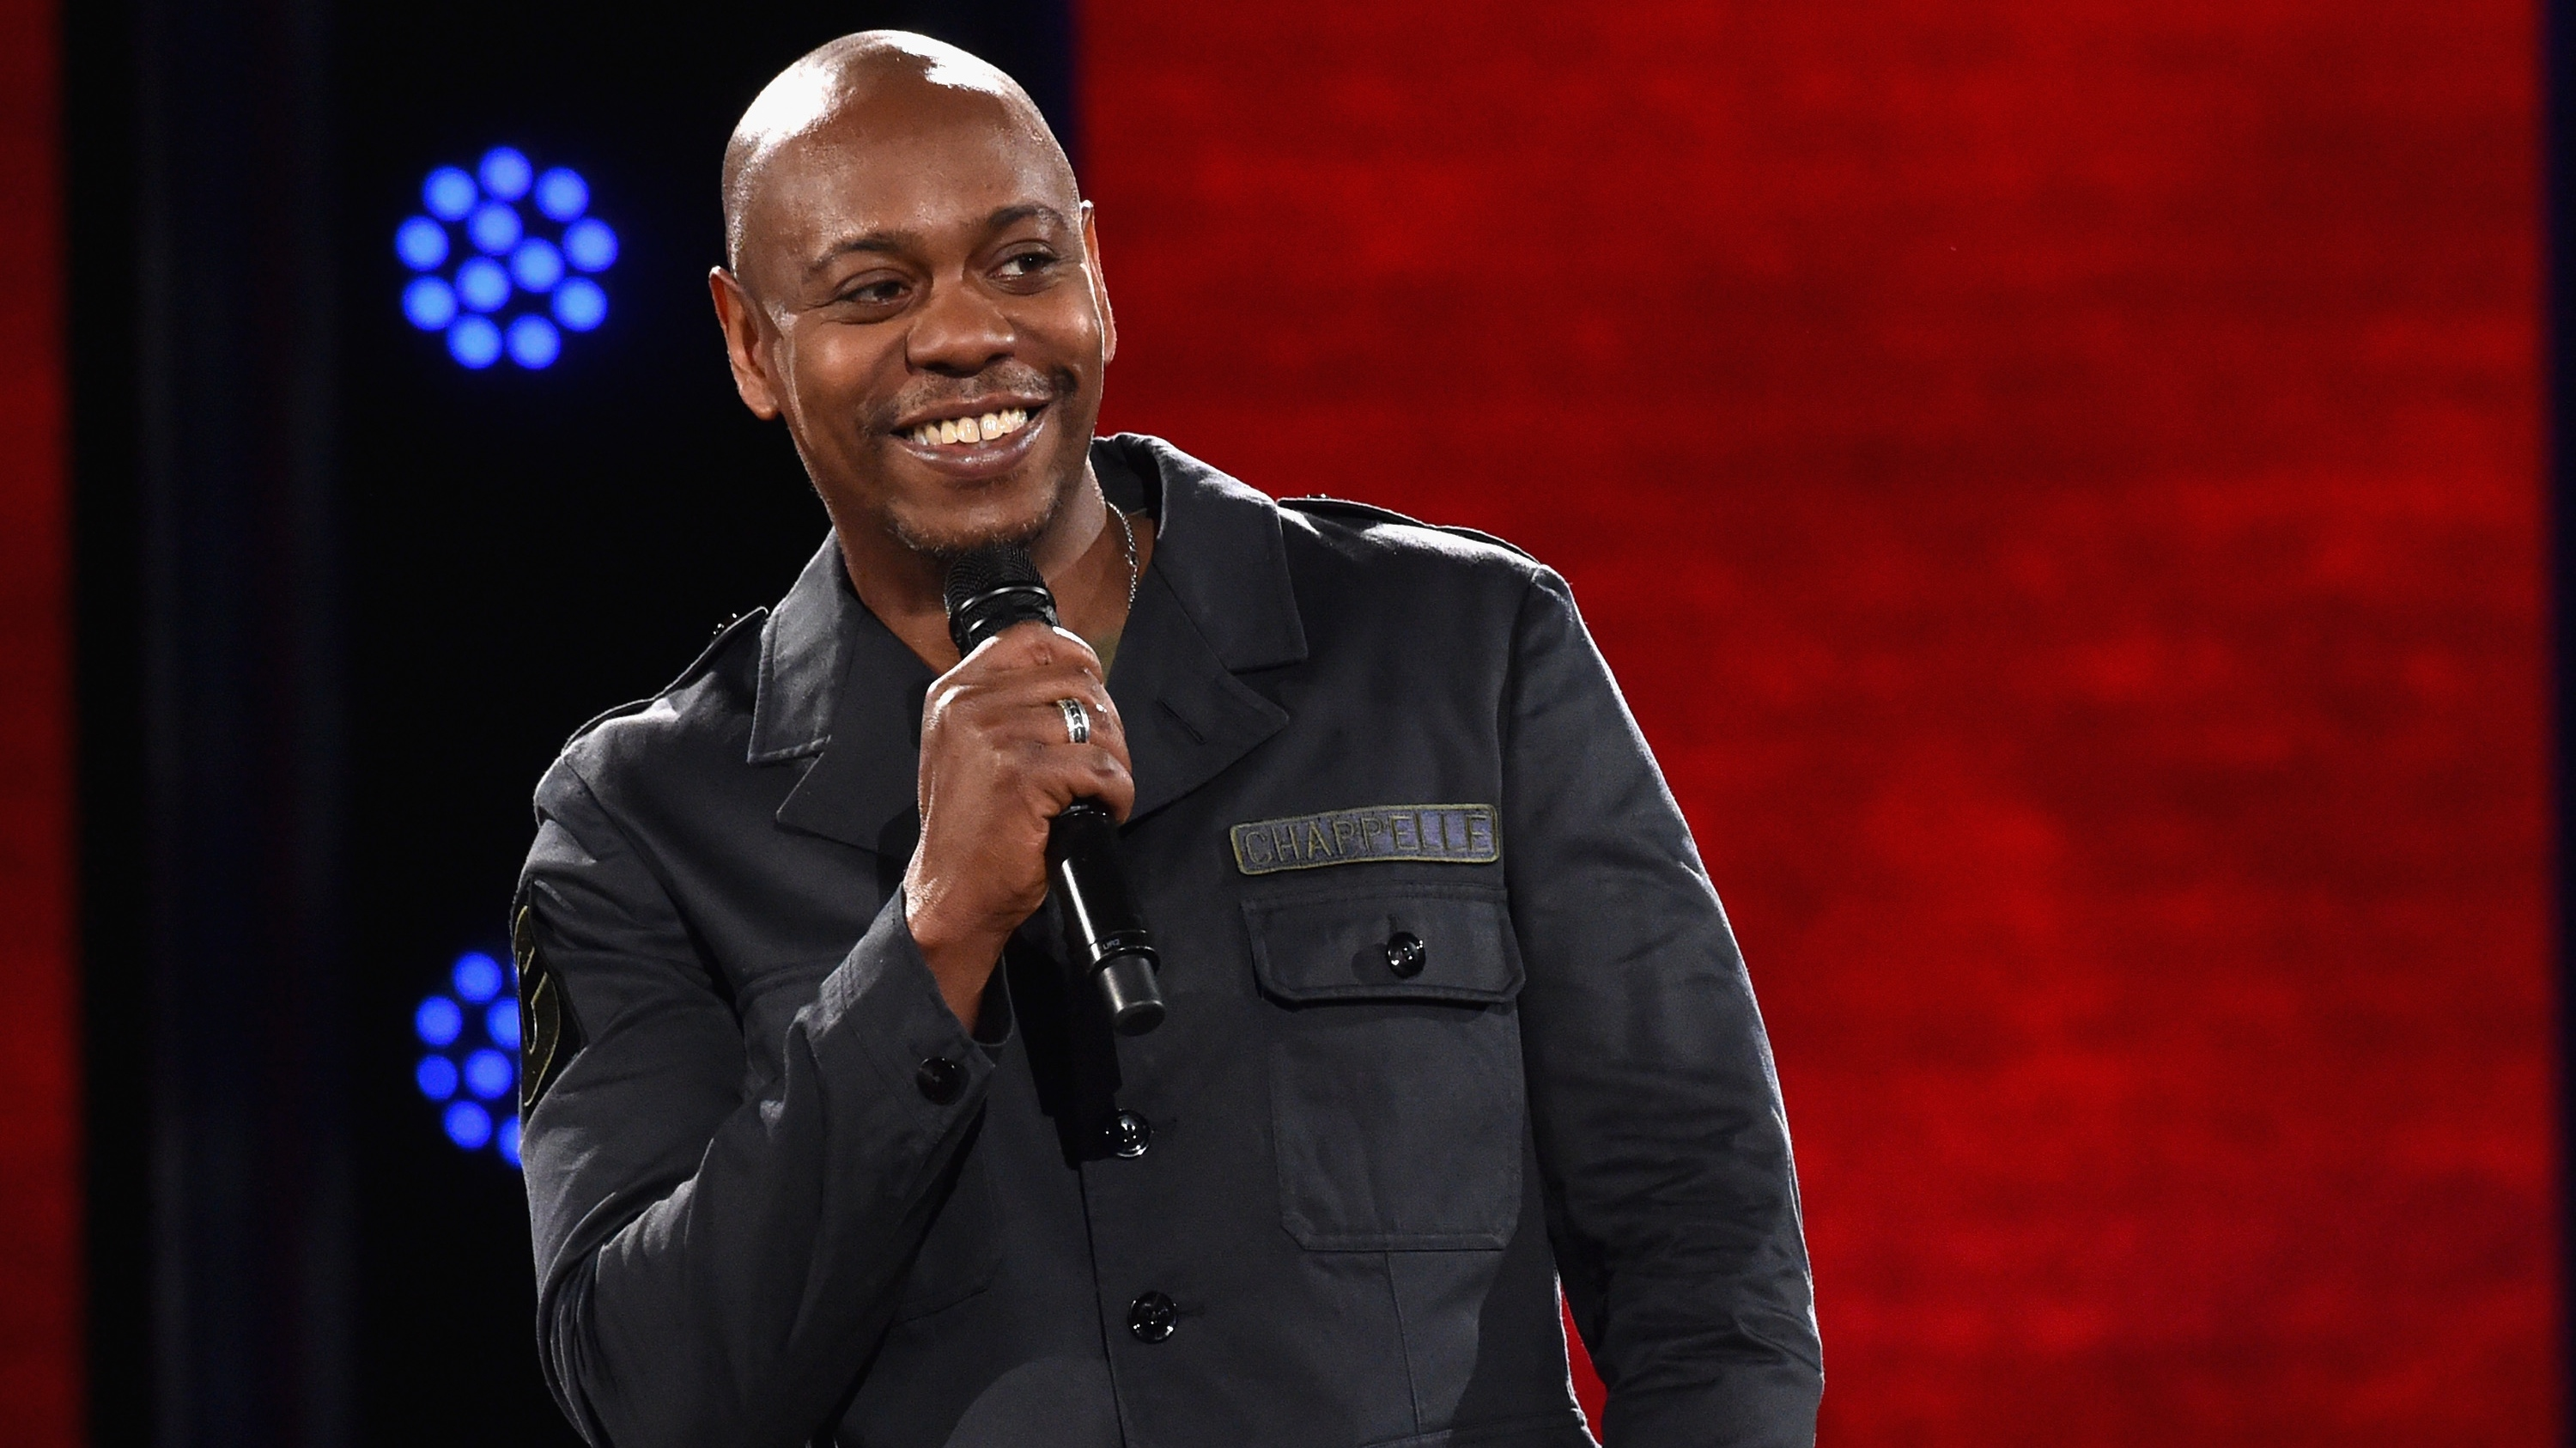 chappelle s show removed from netflix at dave chappelle s request variety https variety com 2020 tv news dave chappelle chappelles show netflix removed 1234839126